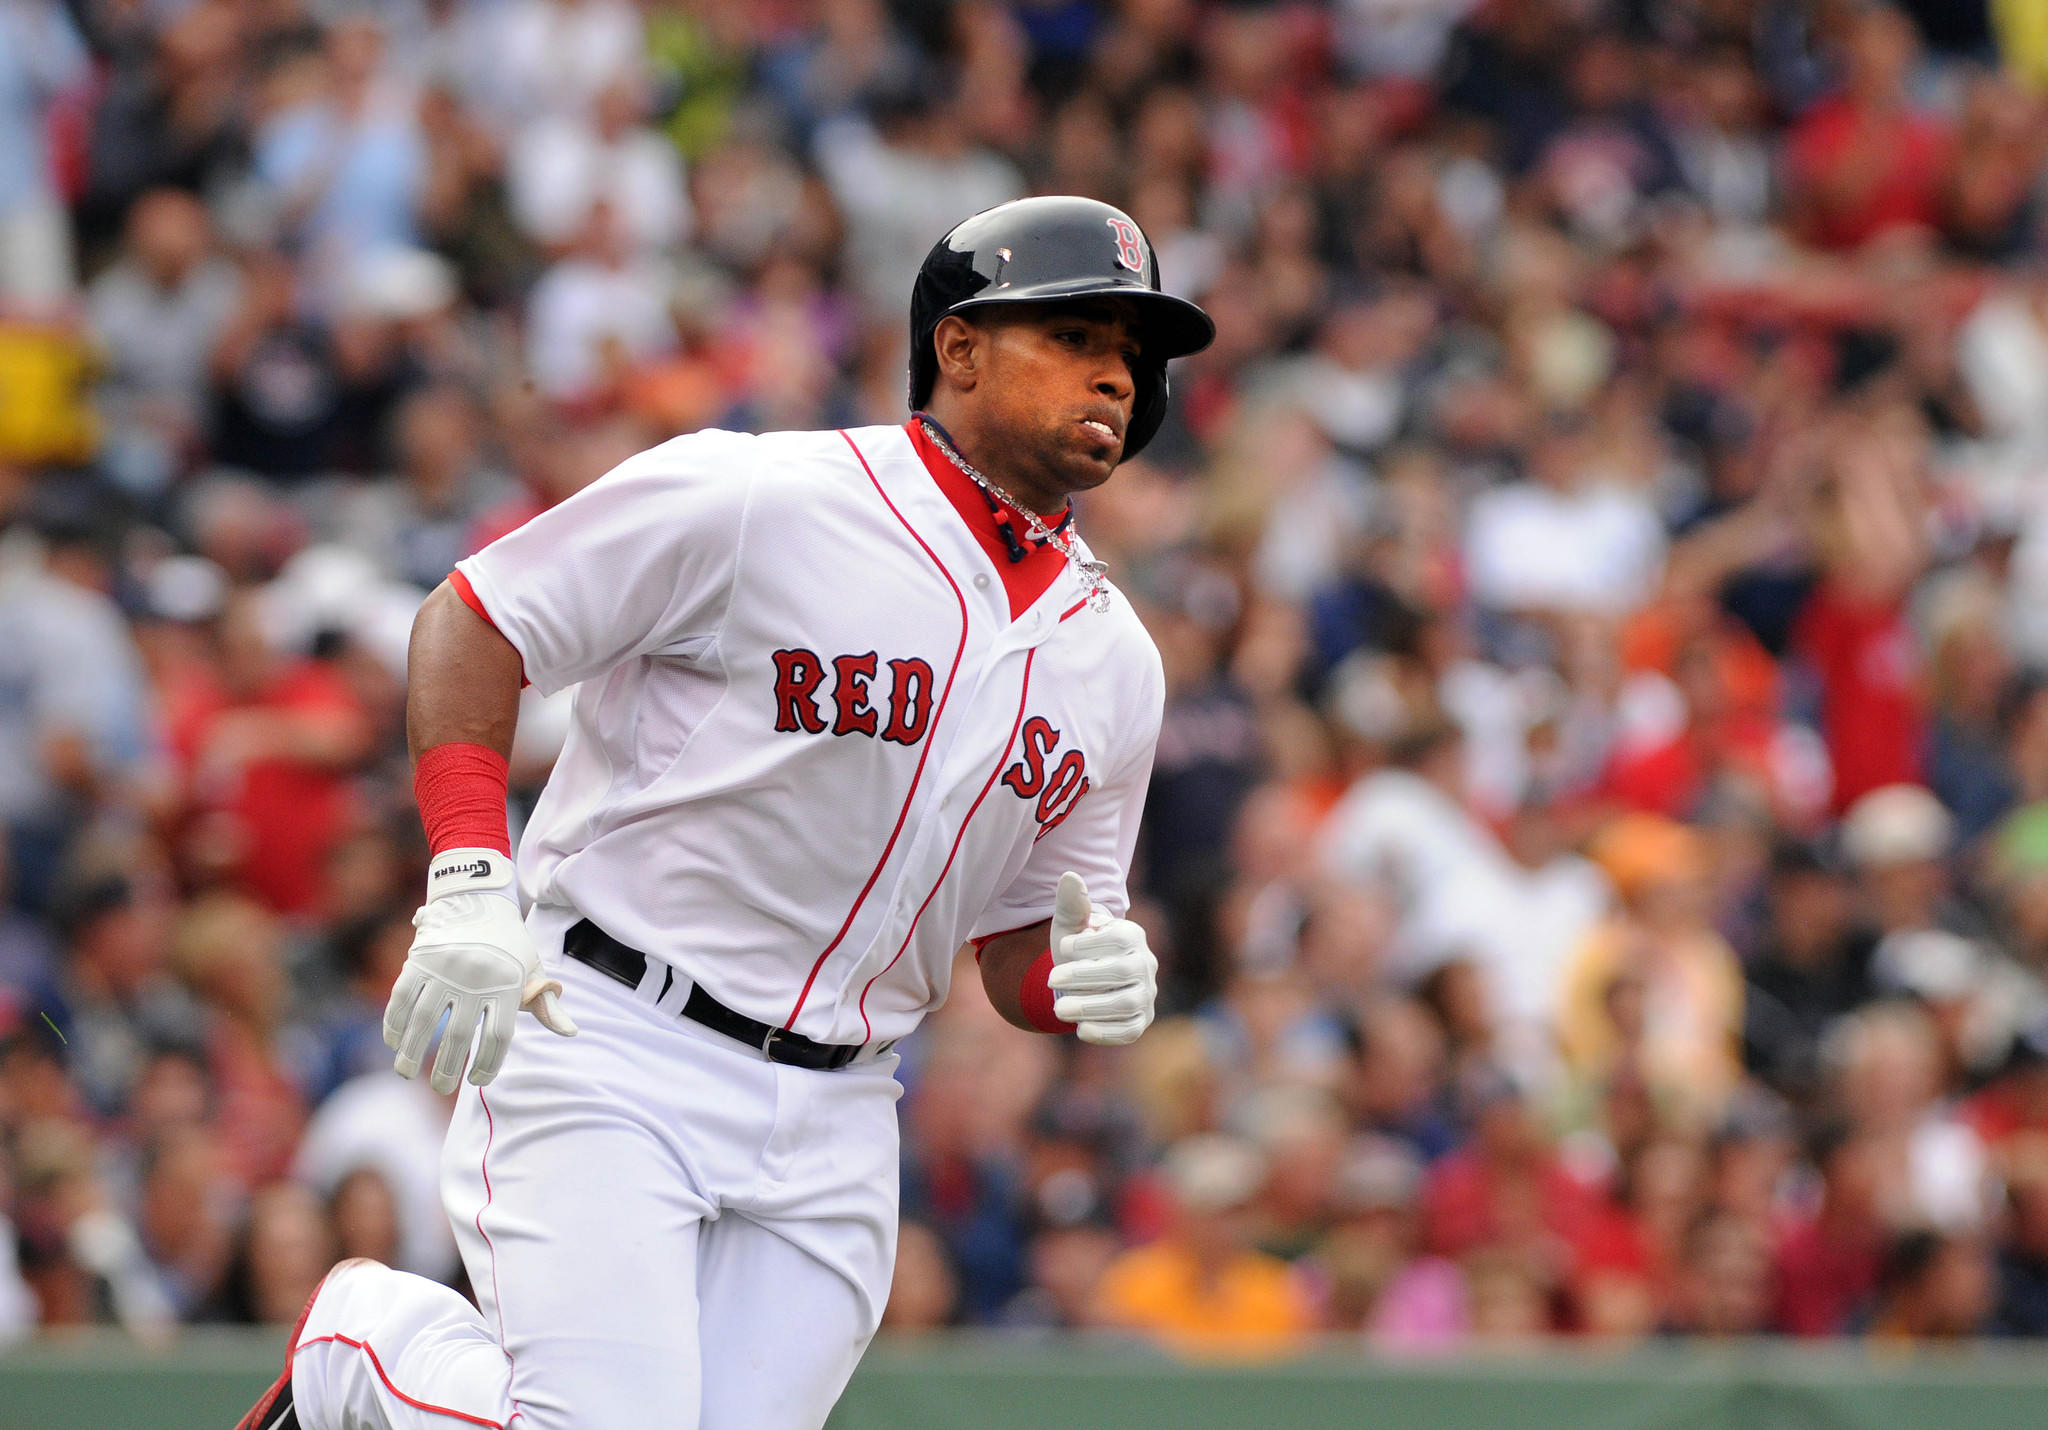 Yoenis Cespedes of the Red Sox runs to first base after getting a hit in the second inning Saturday against the Yankees at Fenway Park.